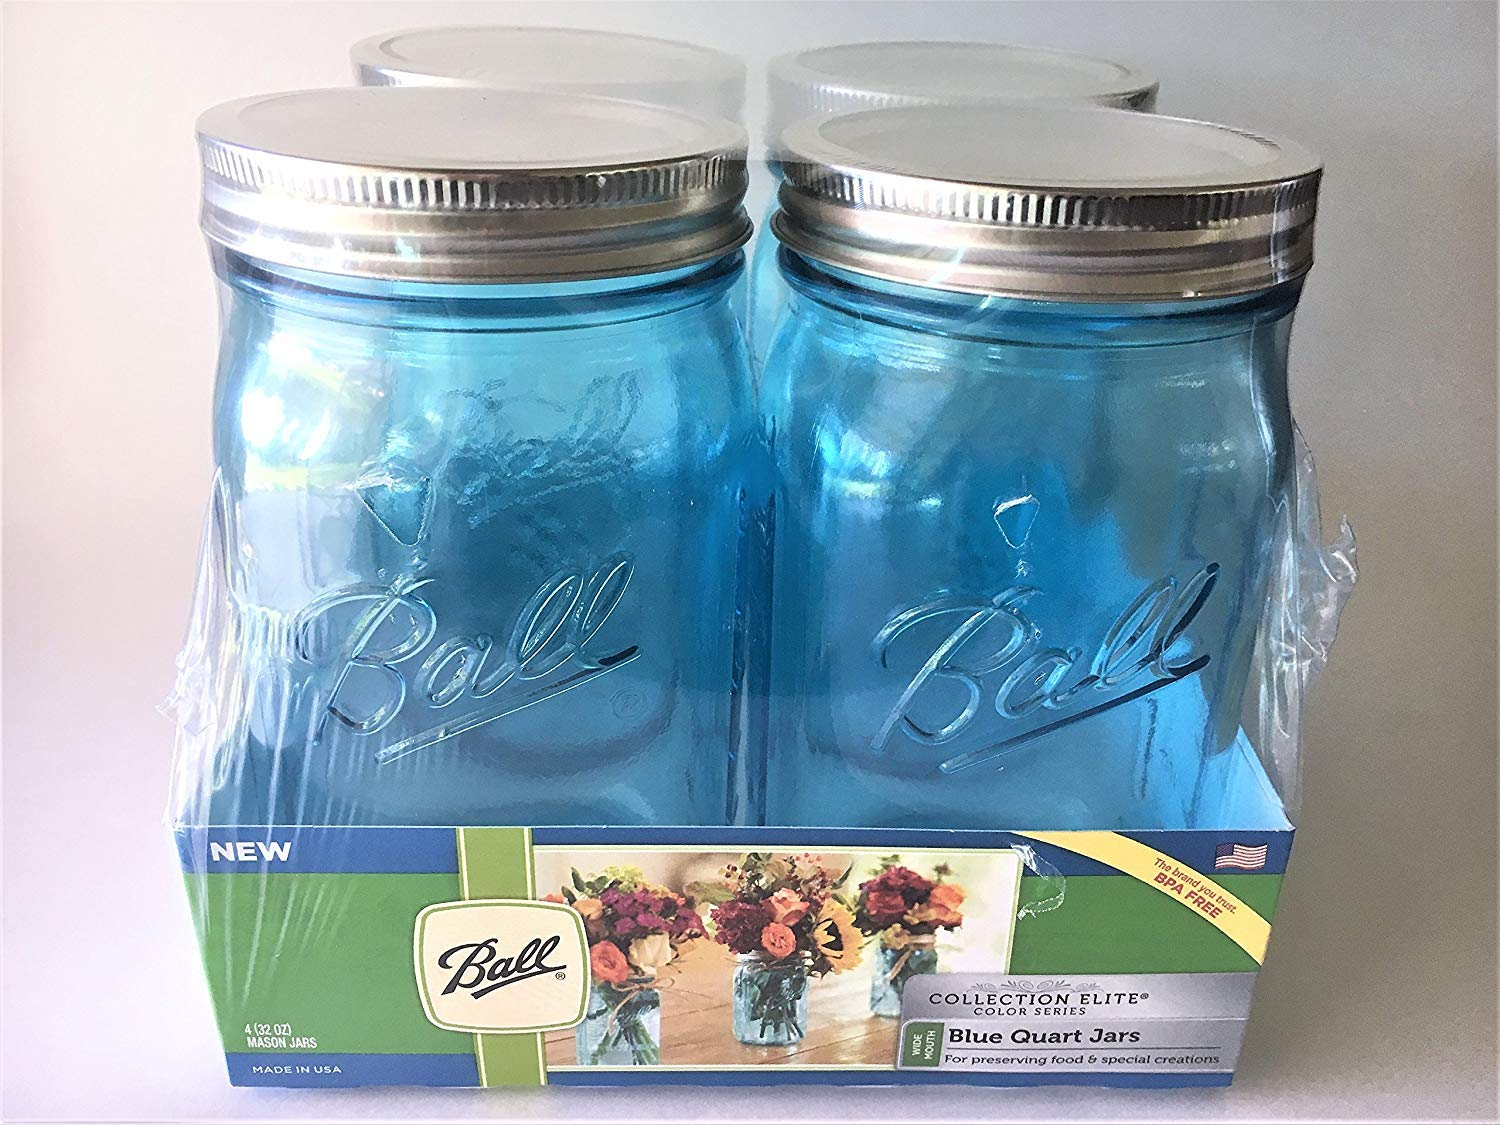 Ball Mason Jar-32 oz. Aqua Blue Glass Ball Collection Elite Color Series Wide Mouth-Set of 4 Jars by Ball